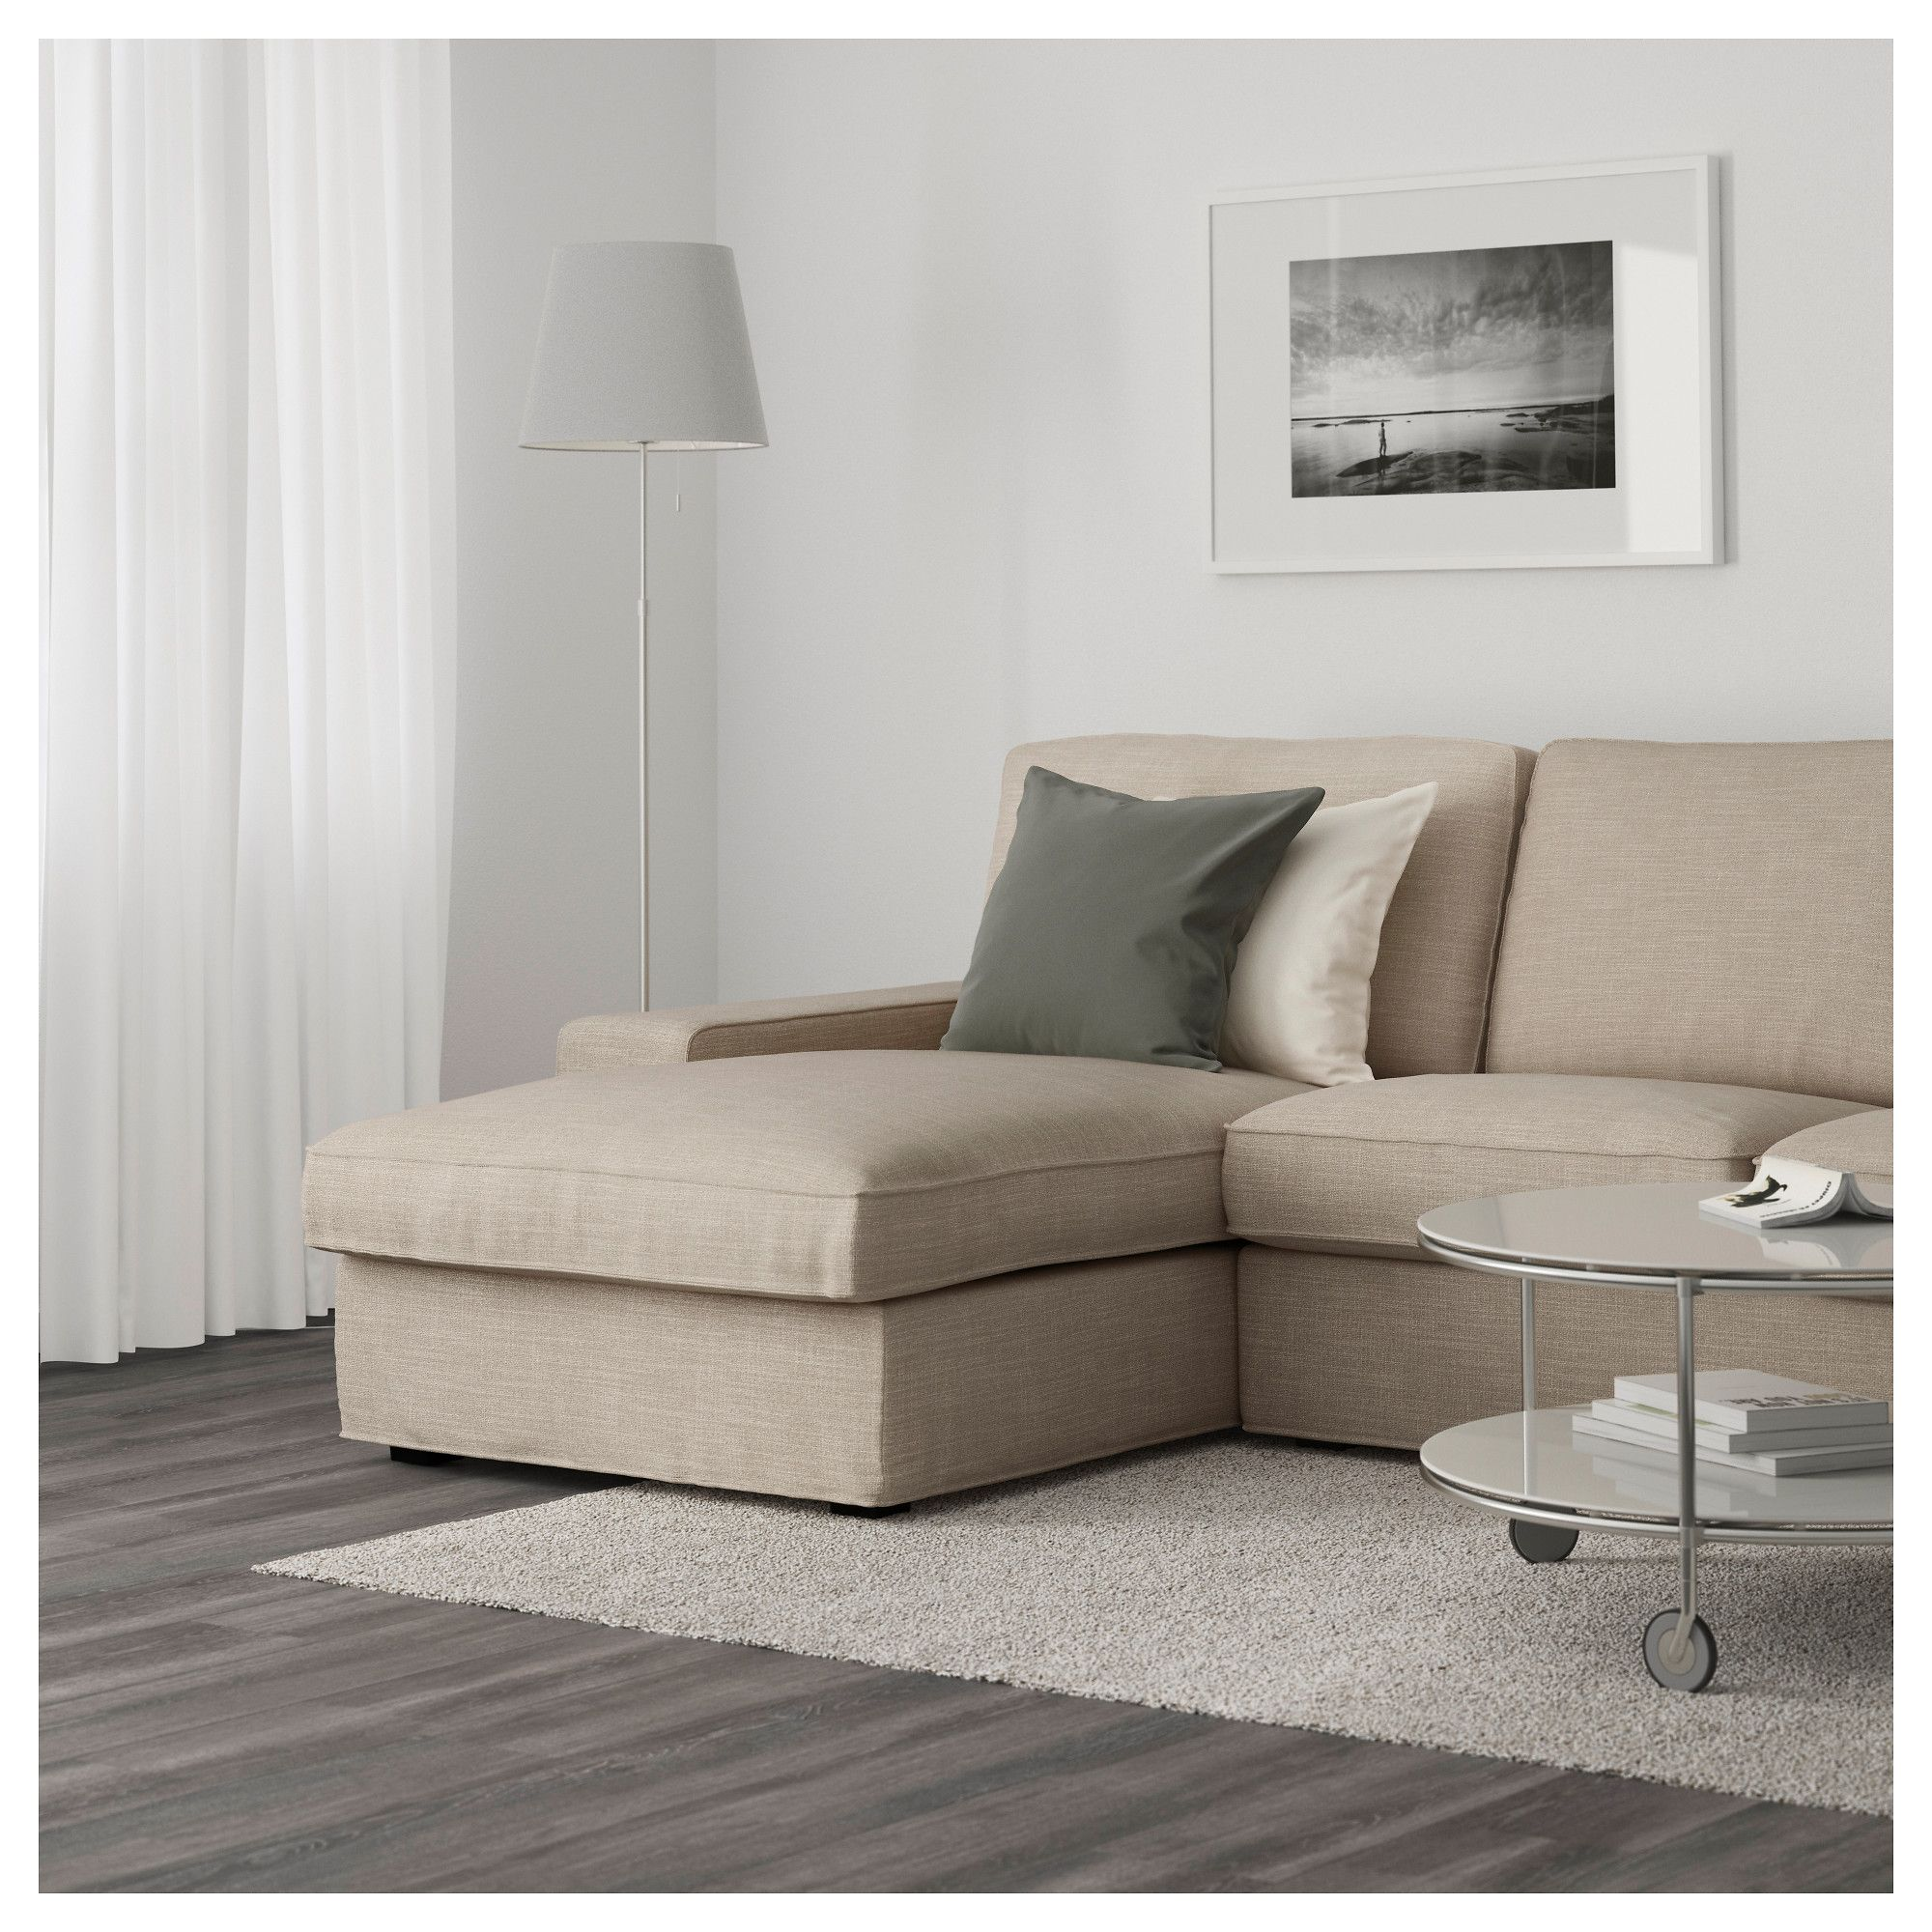 Ikea Kivik Sofa Ikea Kivik Sofa Hillared With Chaise Beige In 2019 Living